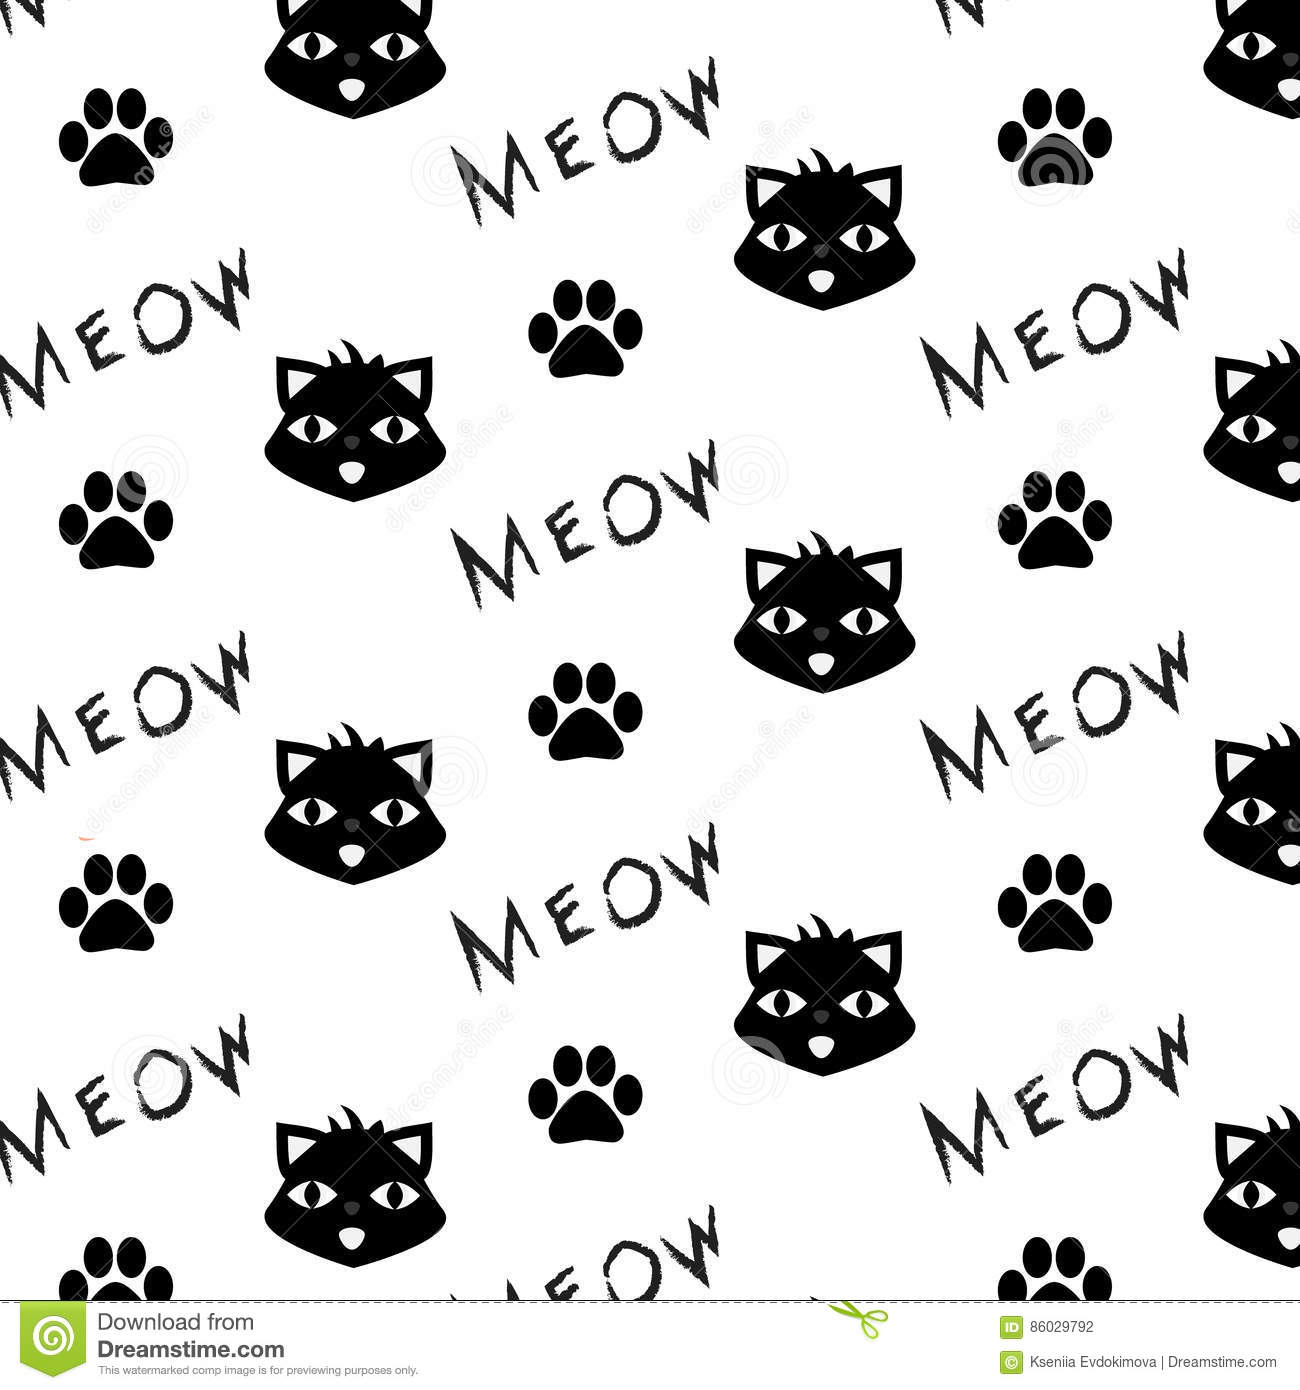 graphic regarding Printable Paw Prints referred to as Vector Practice With Cat, Paw Prints And Meow Phrase. Printable